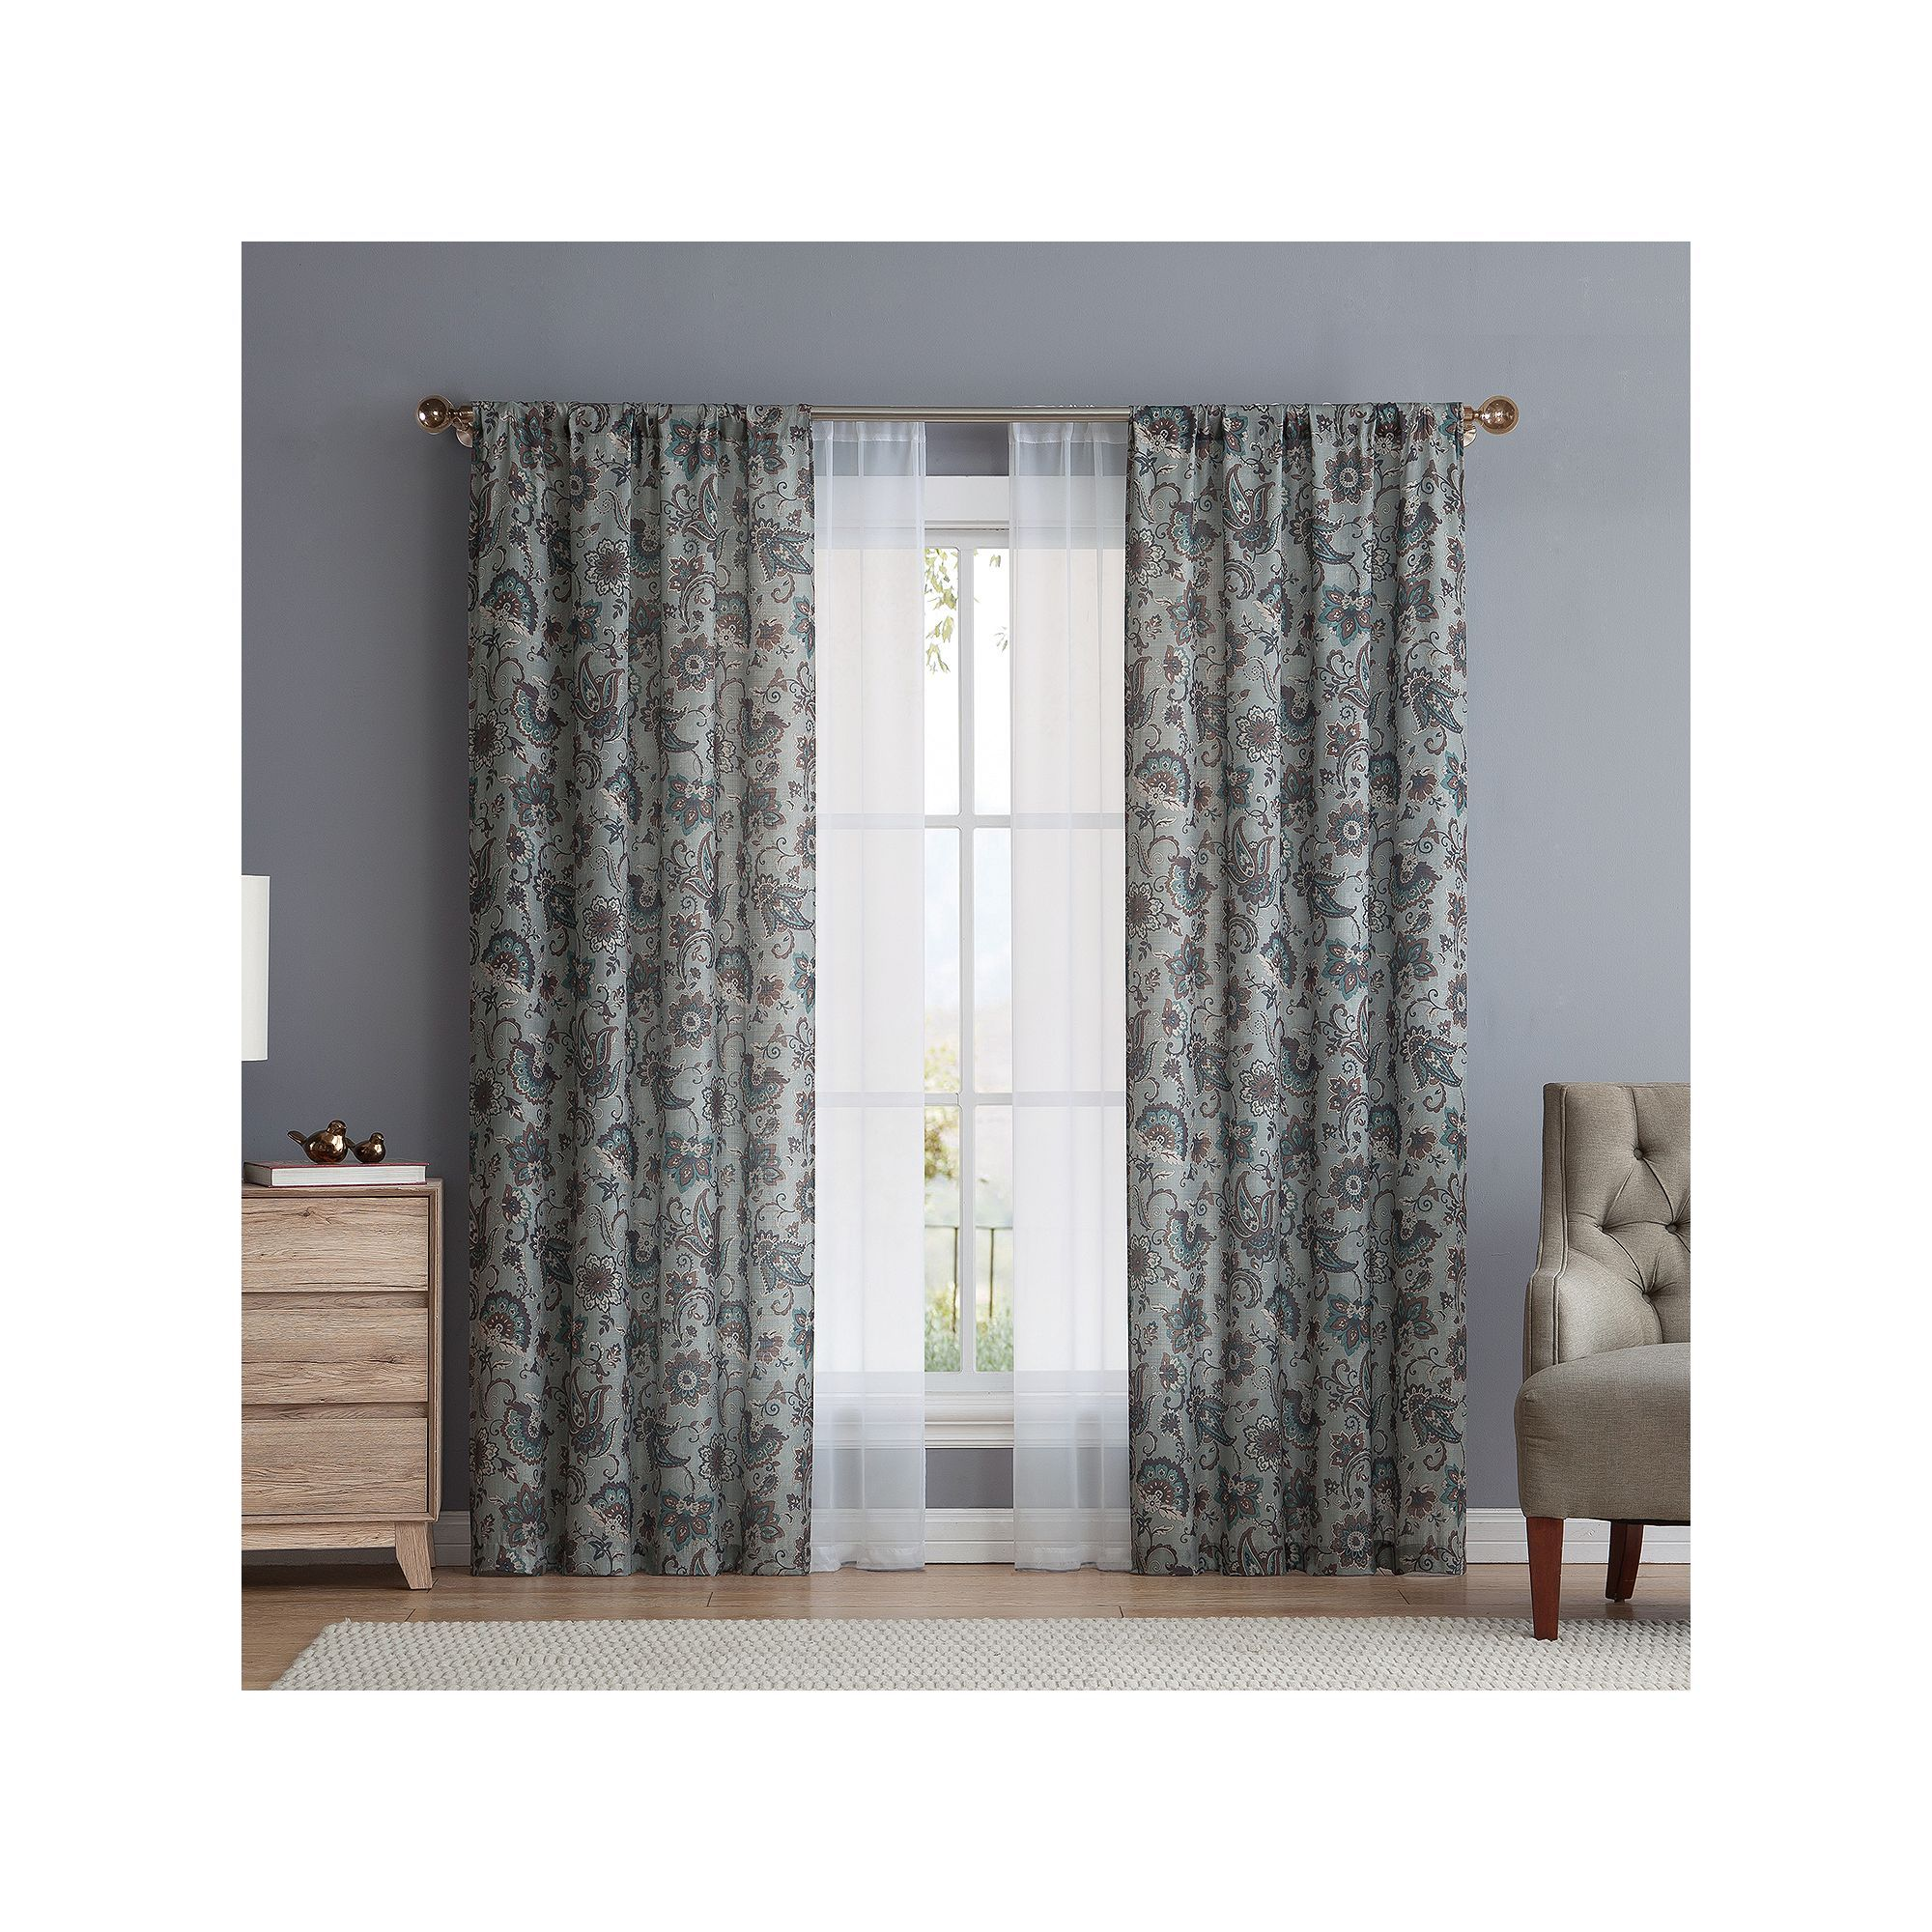 Vcny avon pack curtains green avon and products